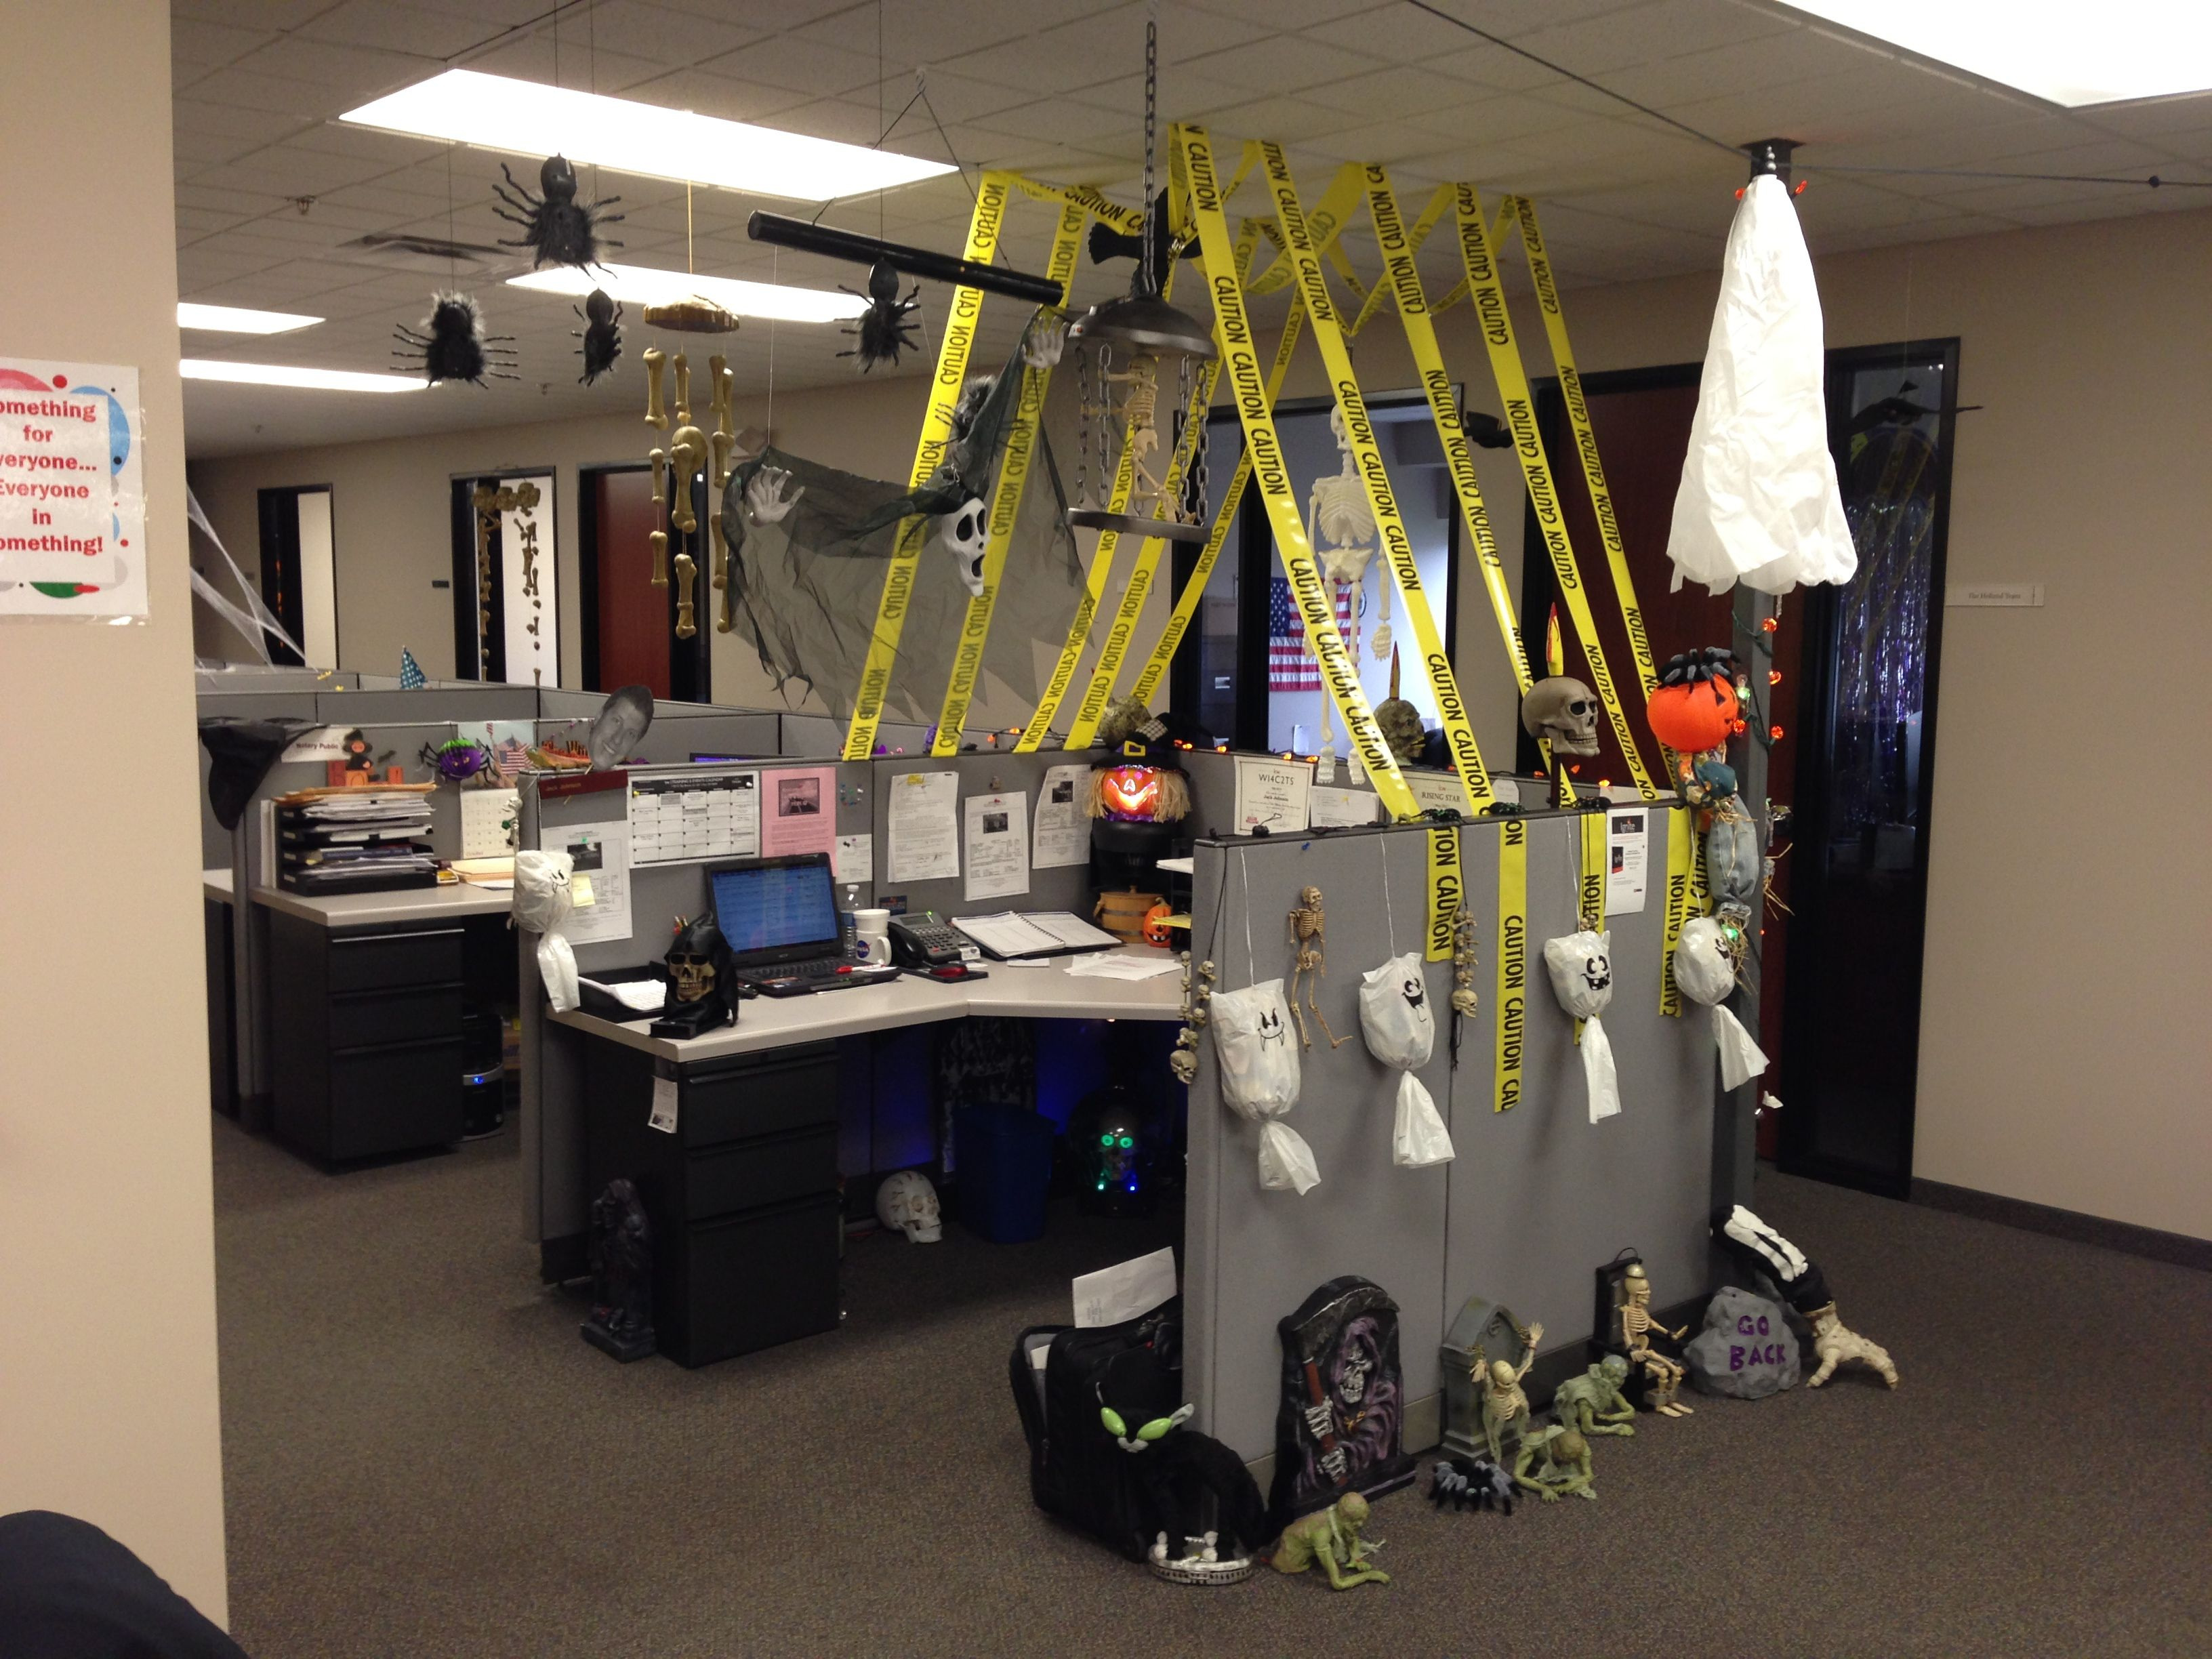 My Haunted Cubicle Halloween Office Cubicle Decor Office Cubicle Halloween Decorations